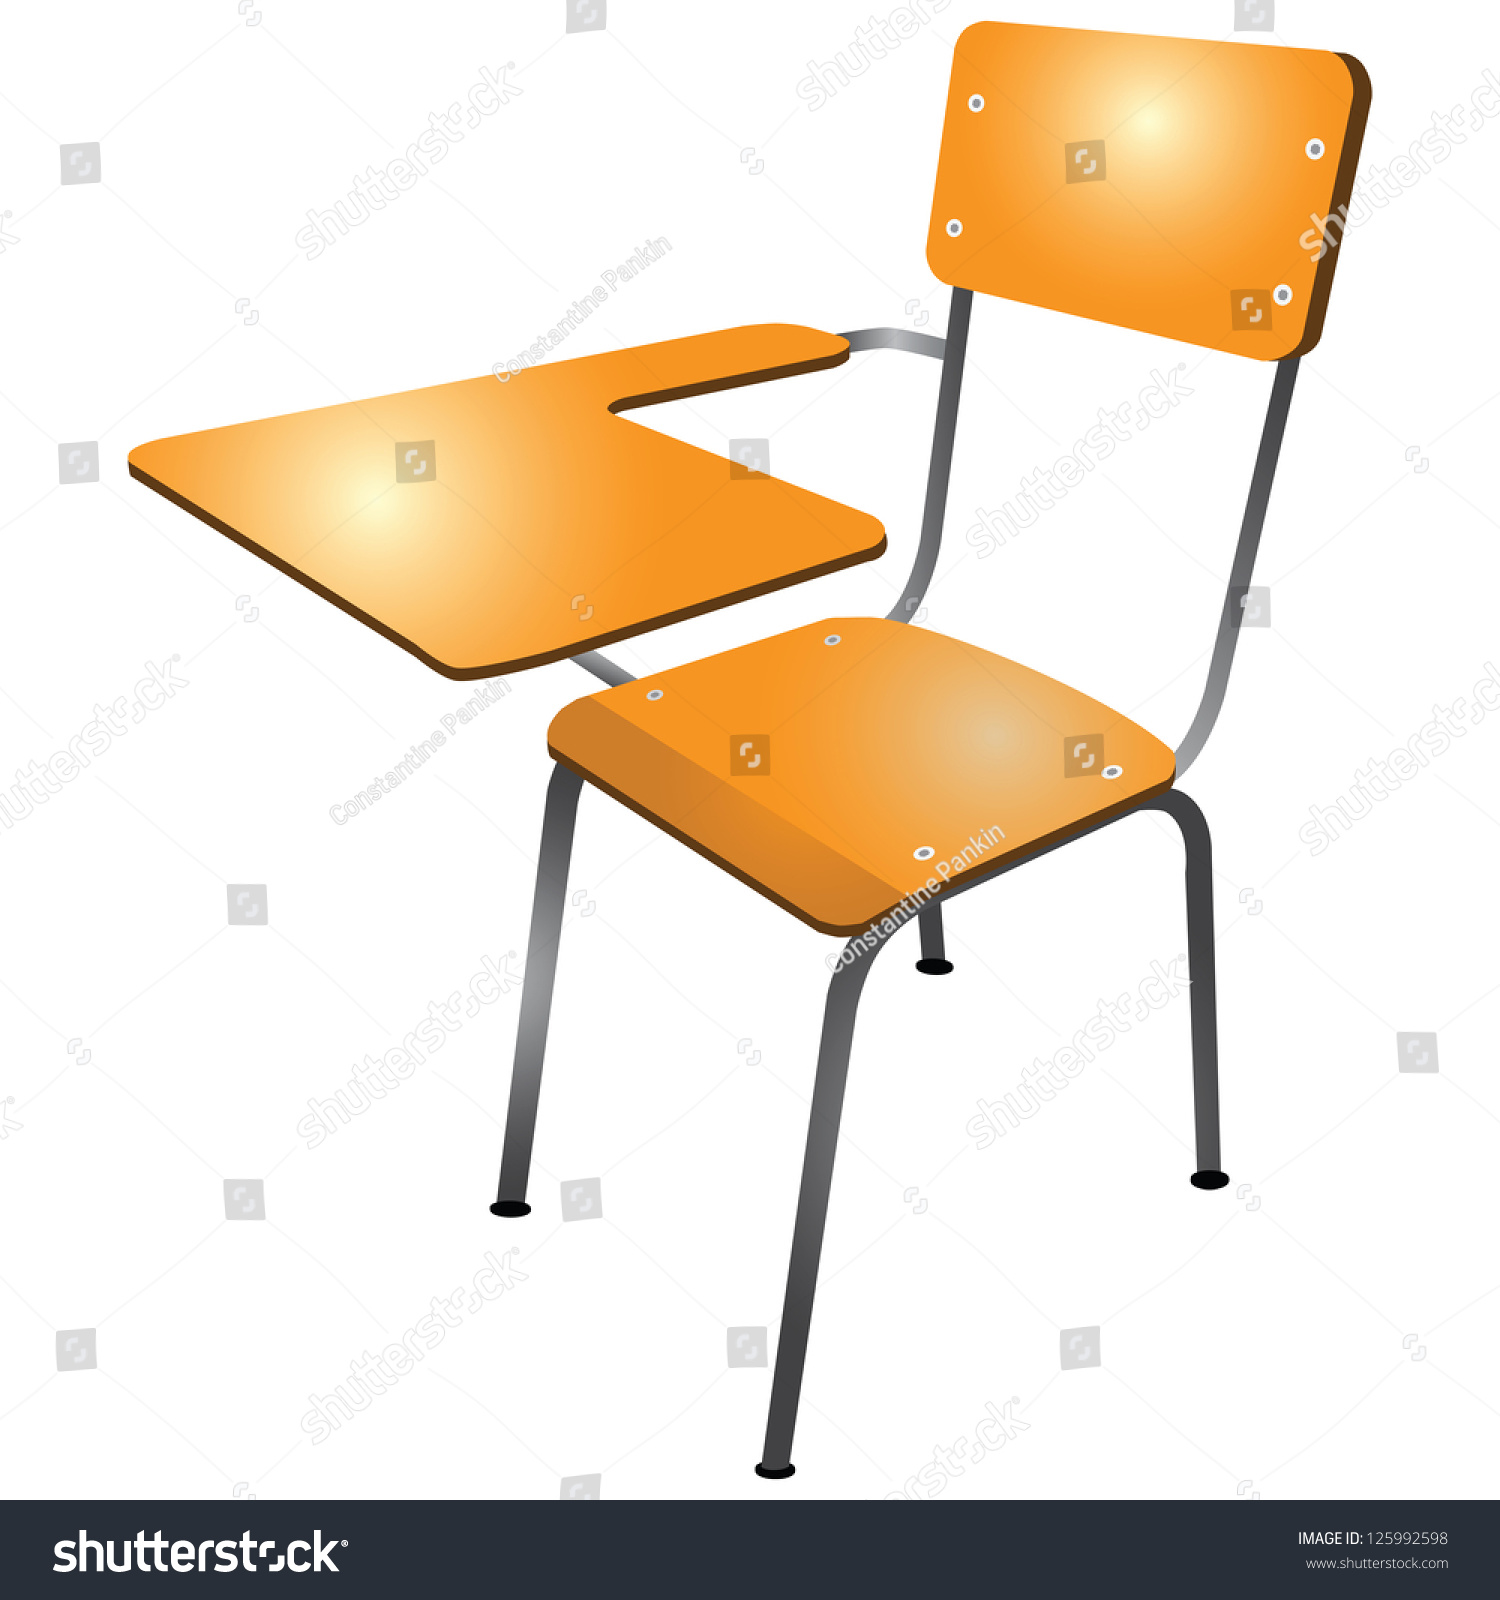 chair stand test measure human scale freedom nederlands